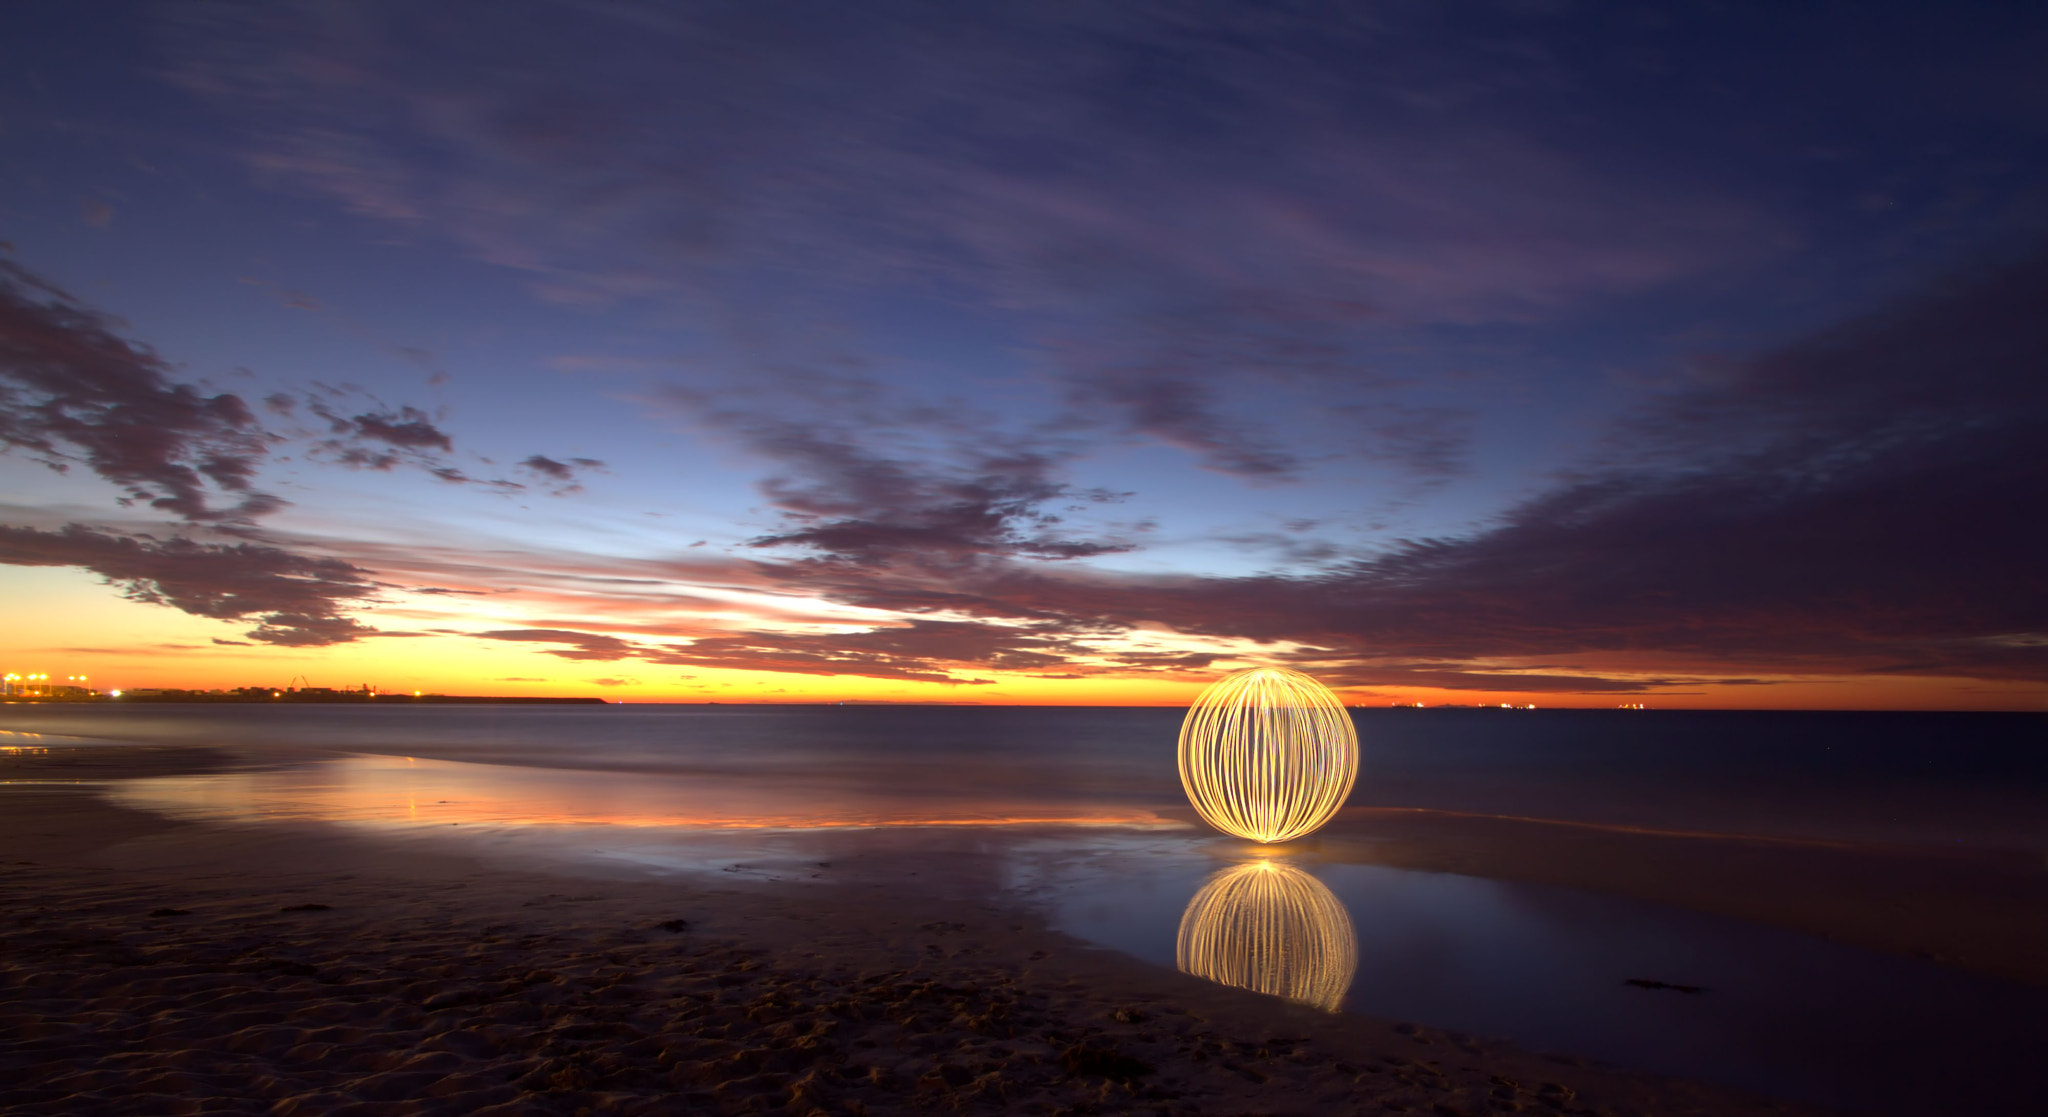 Photograph Orb by Tristan  Jud on 500px